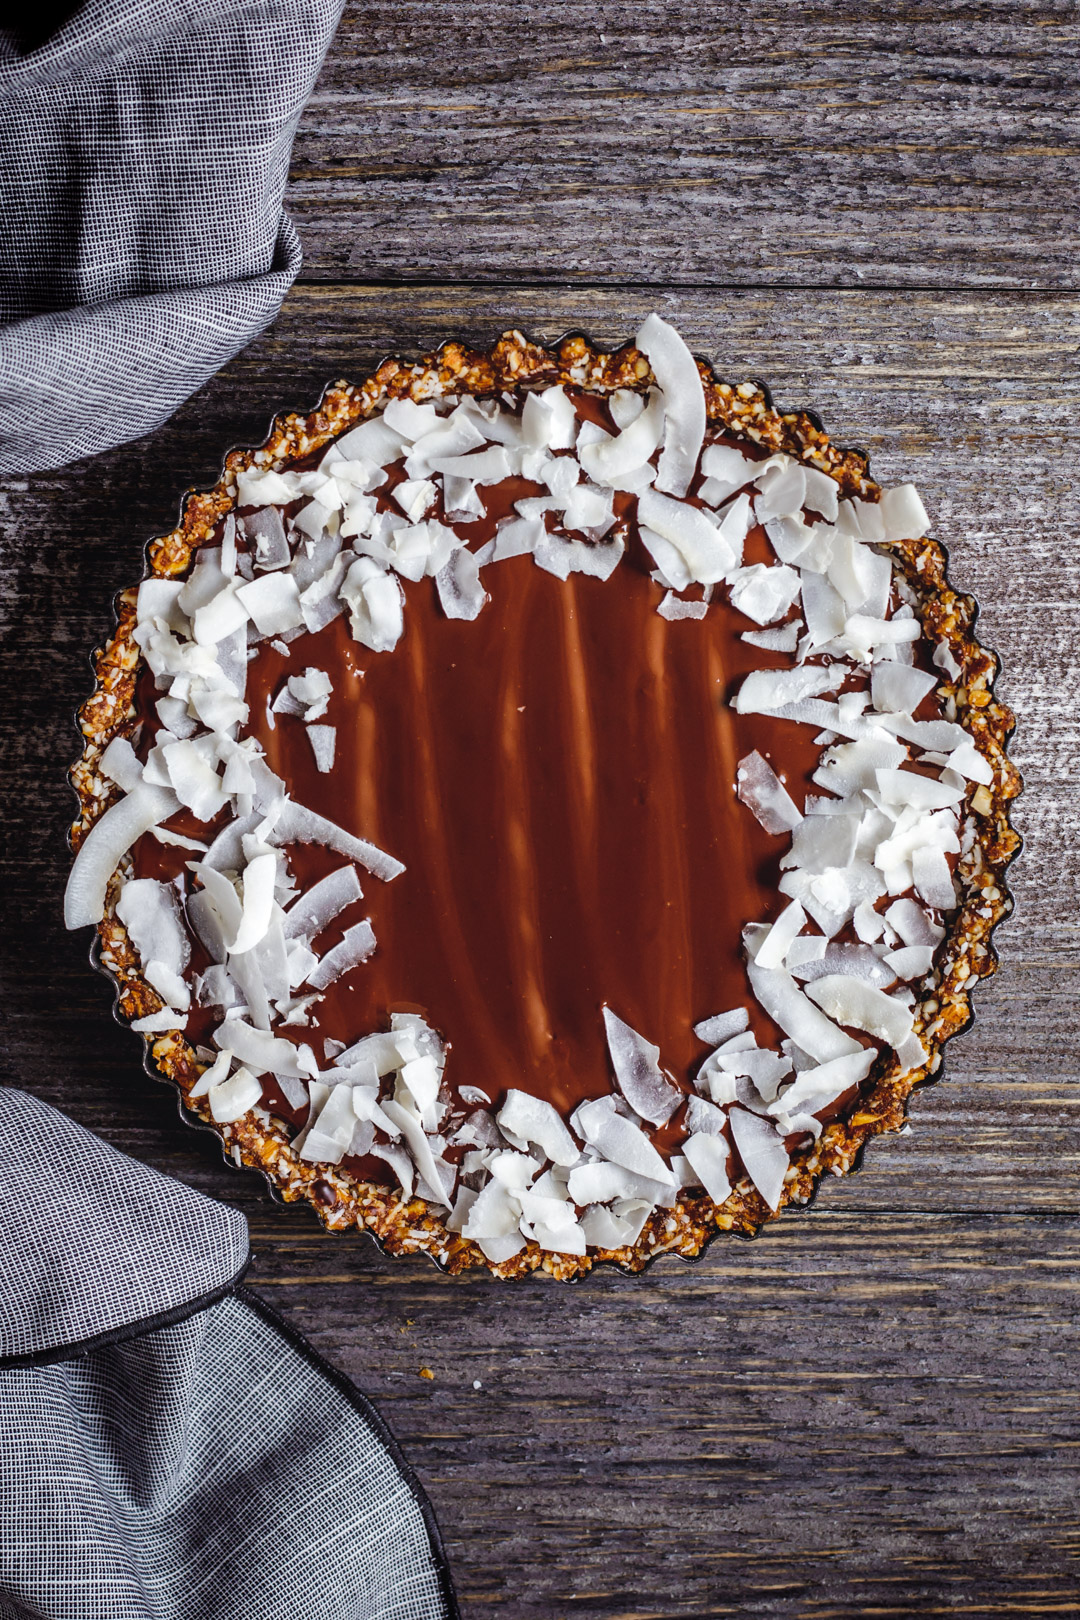 Chocolate Coconut Tart à la Bounty